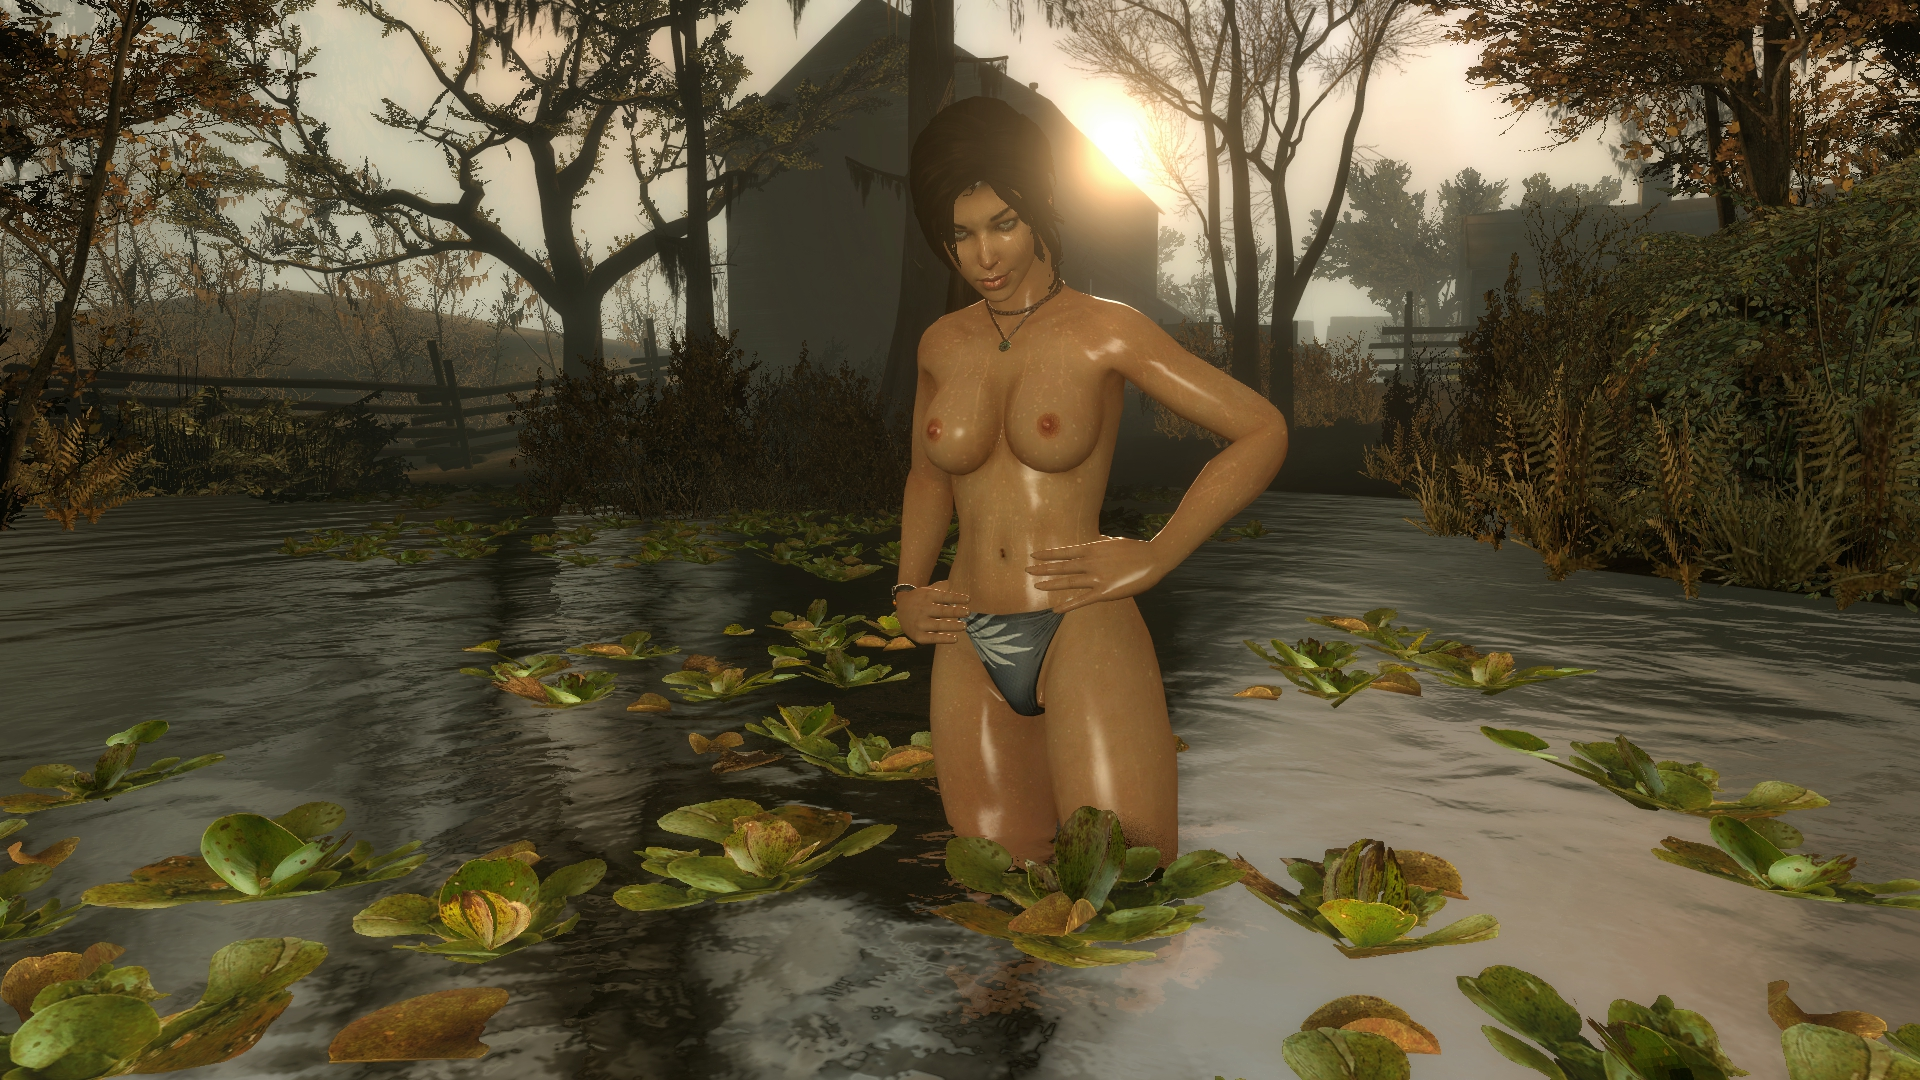 Tomb raider 3 nudepatch rar hentay scenes